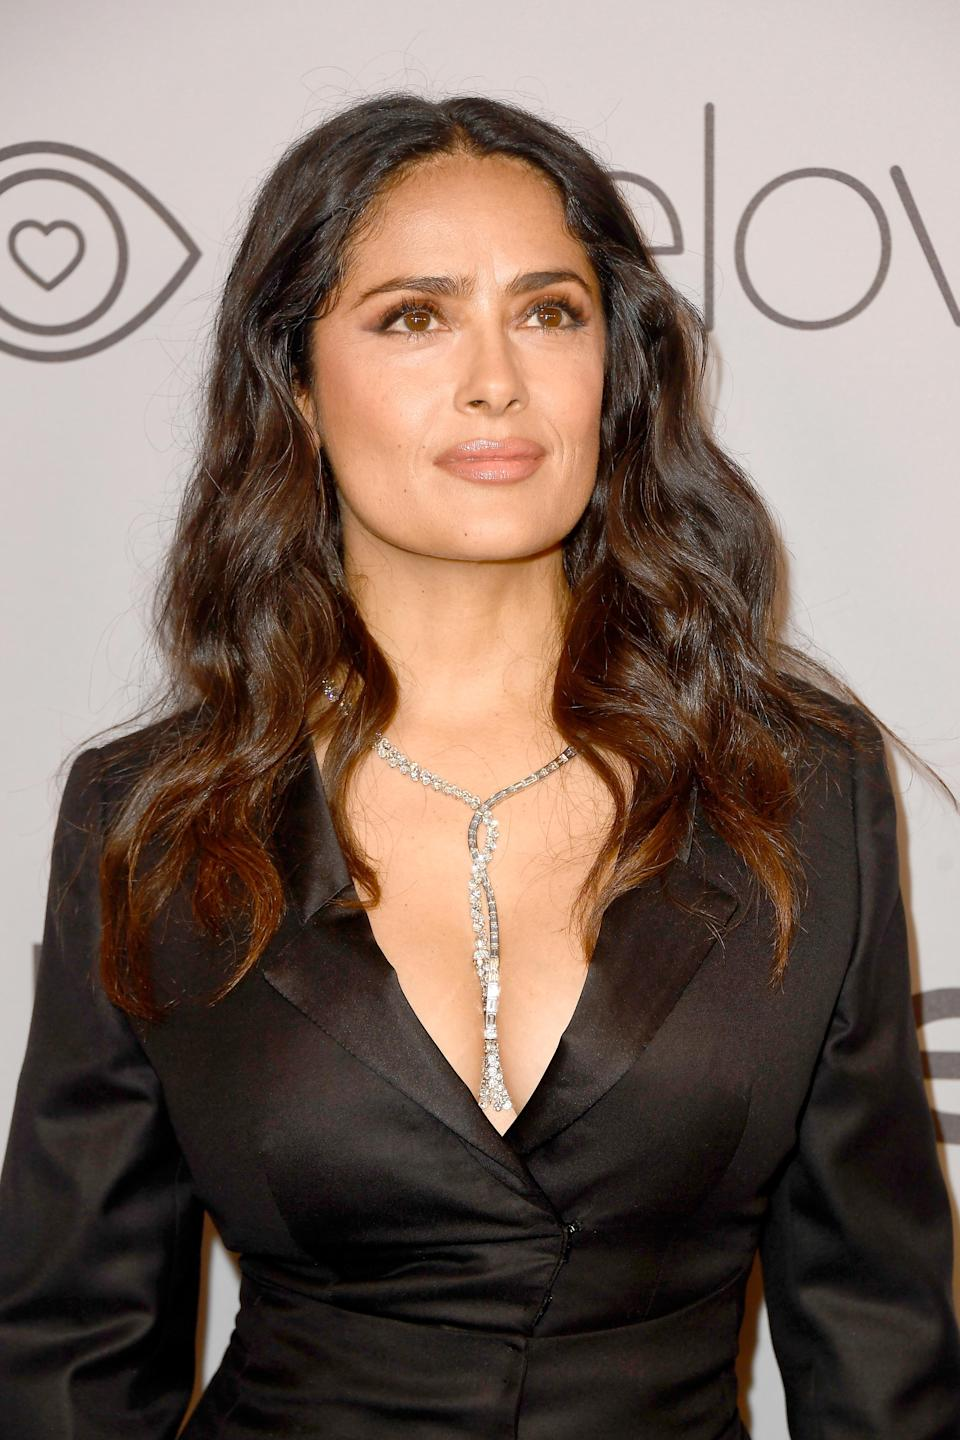 Salma Hayek says she feels shame over not speaking up about Harvey Weinstein's alleged abuse. (Photo: Getty Images)